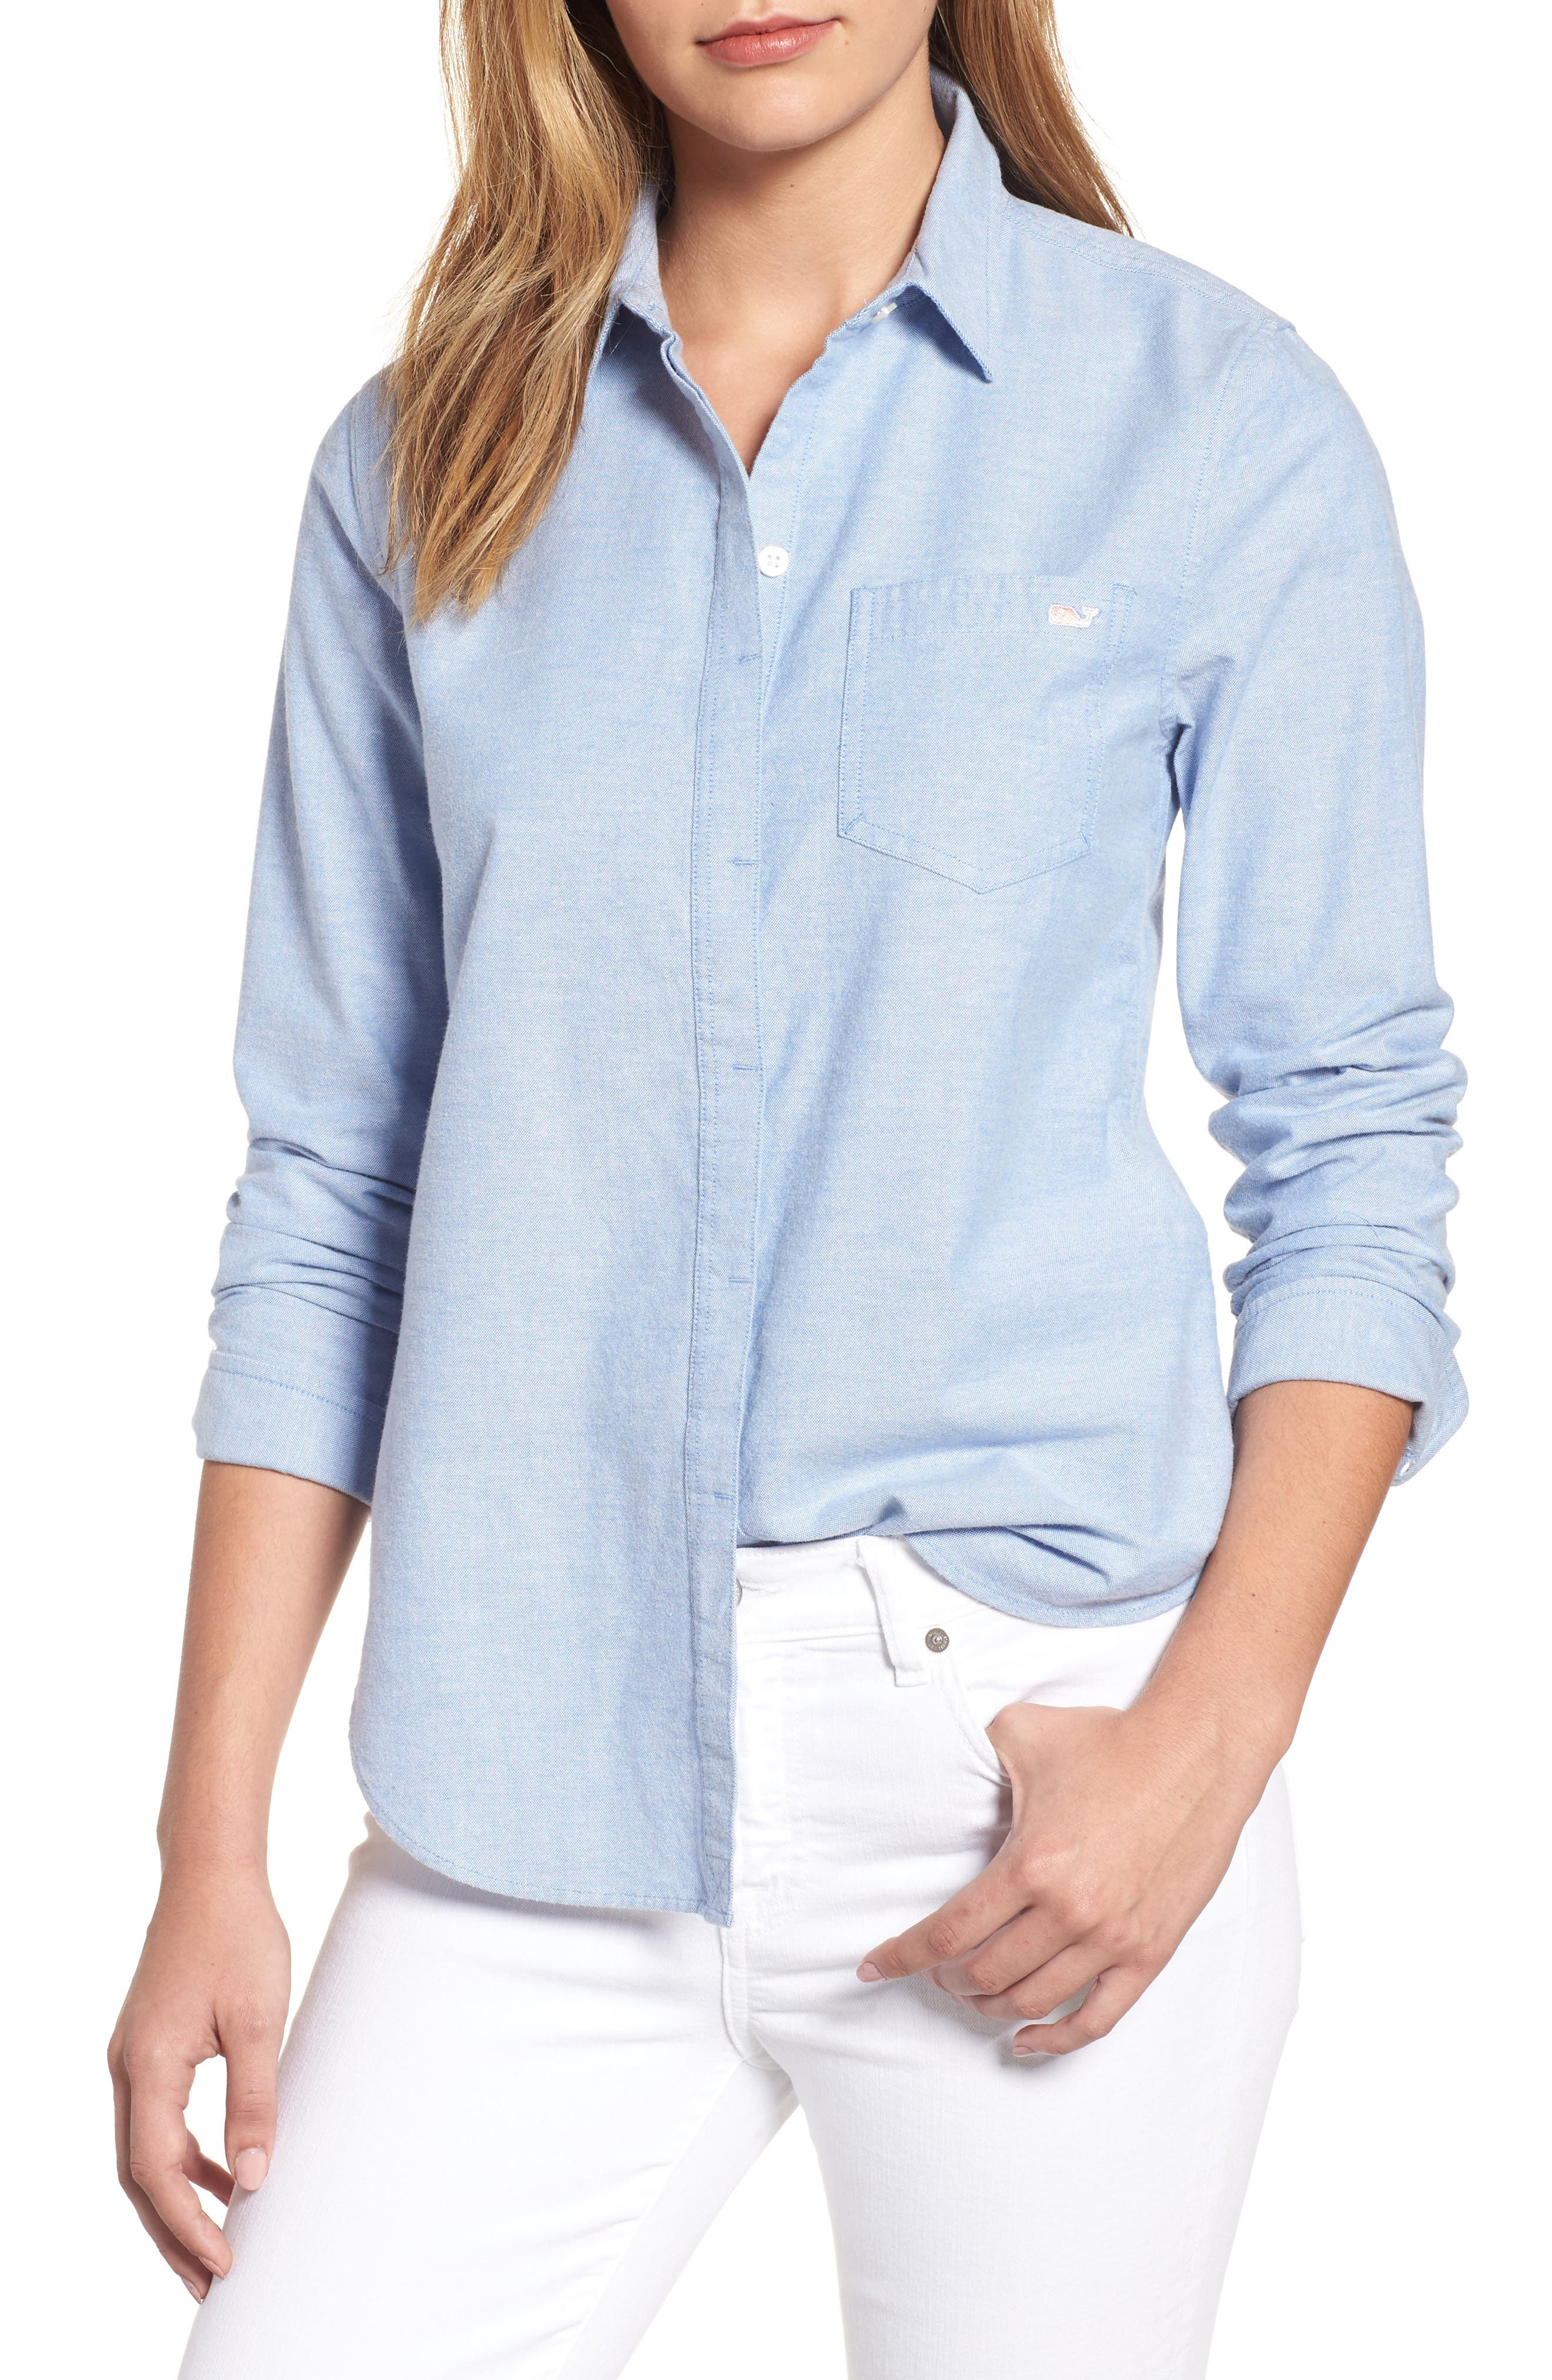 Vineyard Vines Relaxed Fit Oxford Shirt